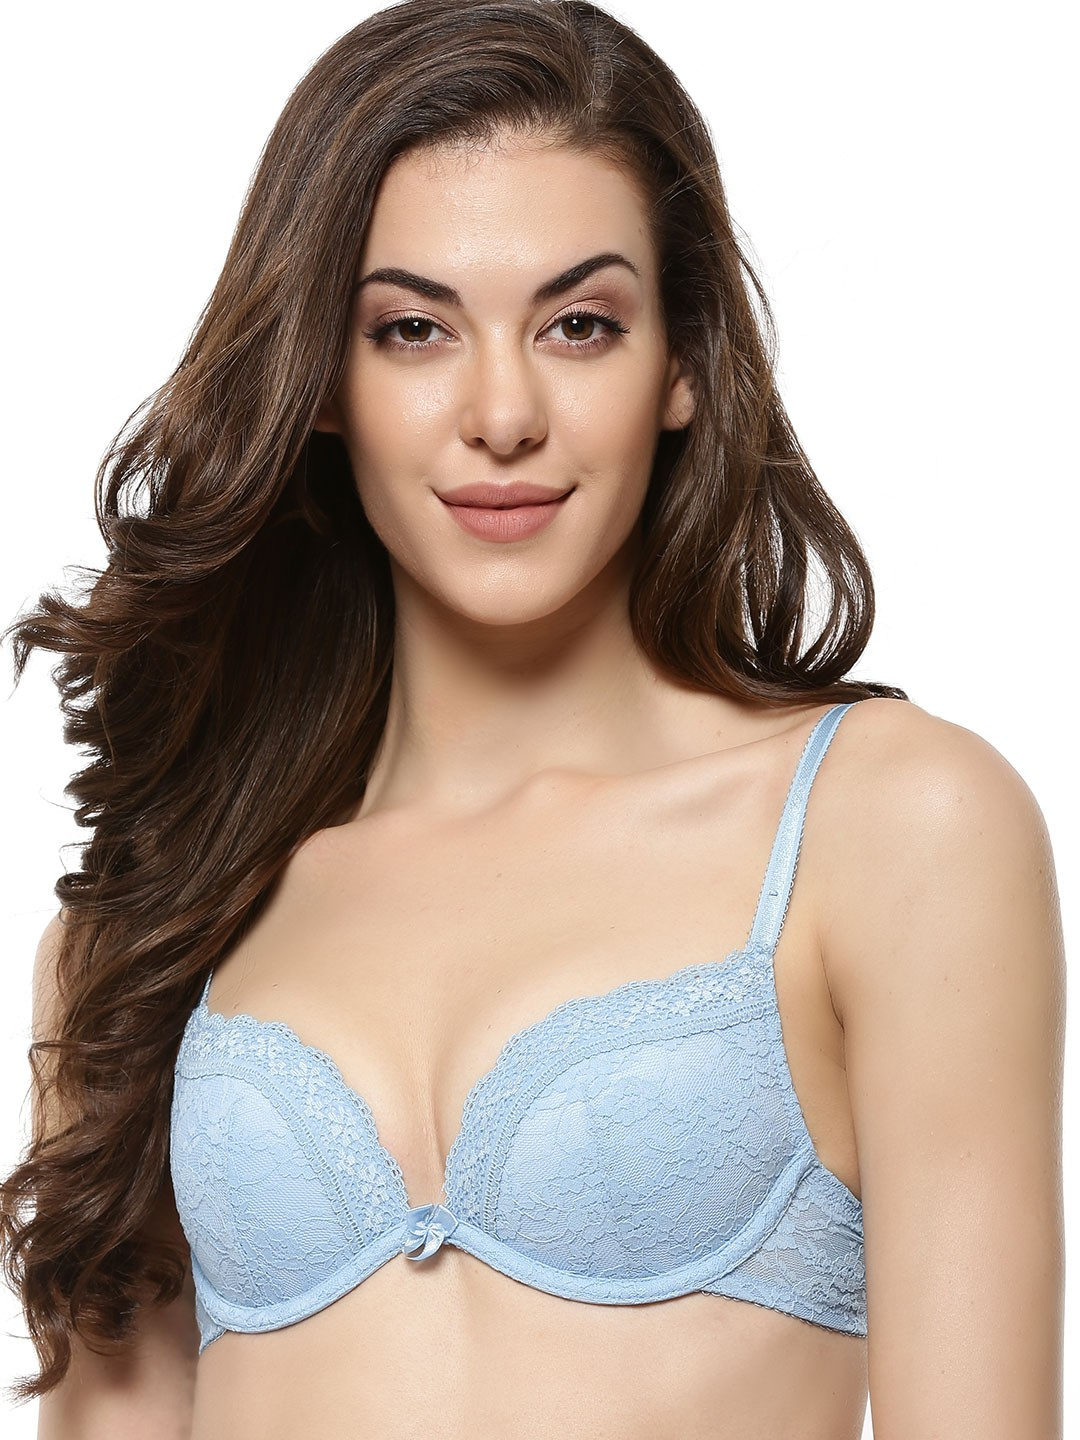 Feel supported & stylish with New Look's women's bras. Find strapless bras, backless and stick on bra styles in black, nude and more. Free delivery available.